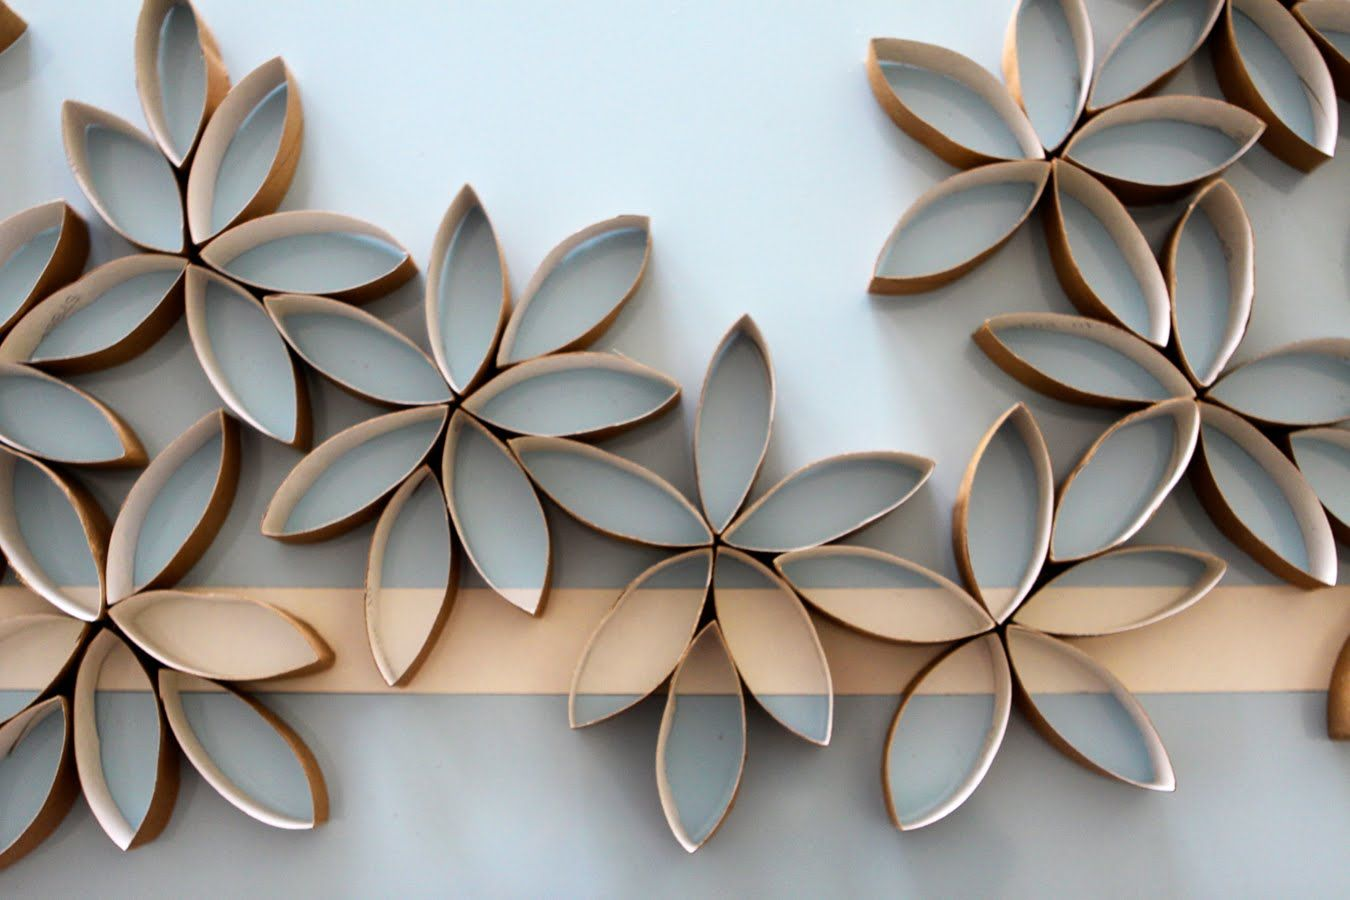 Flower Wall Art Diy Pinterest Toilet Paper Rolls Toilet Paper